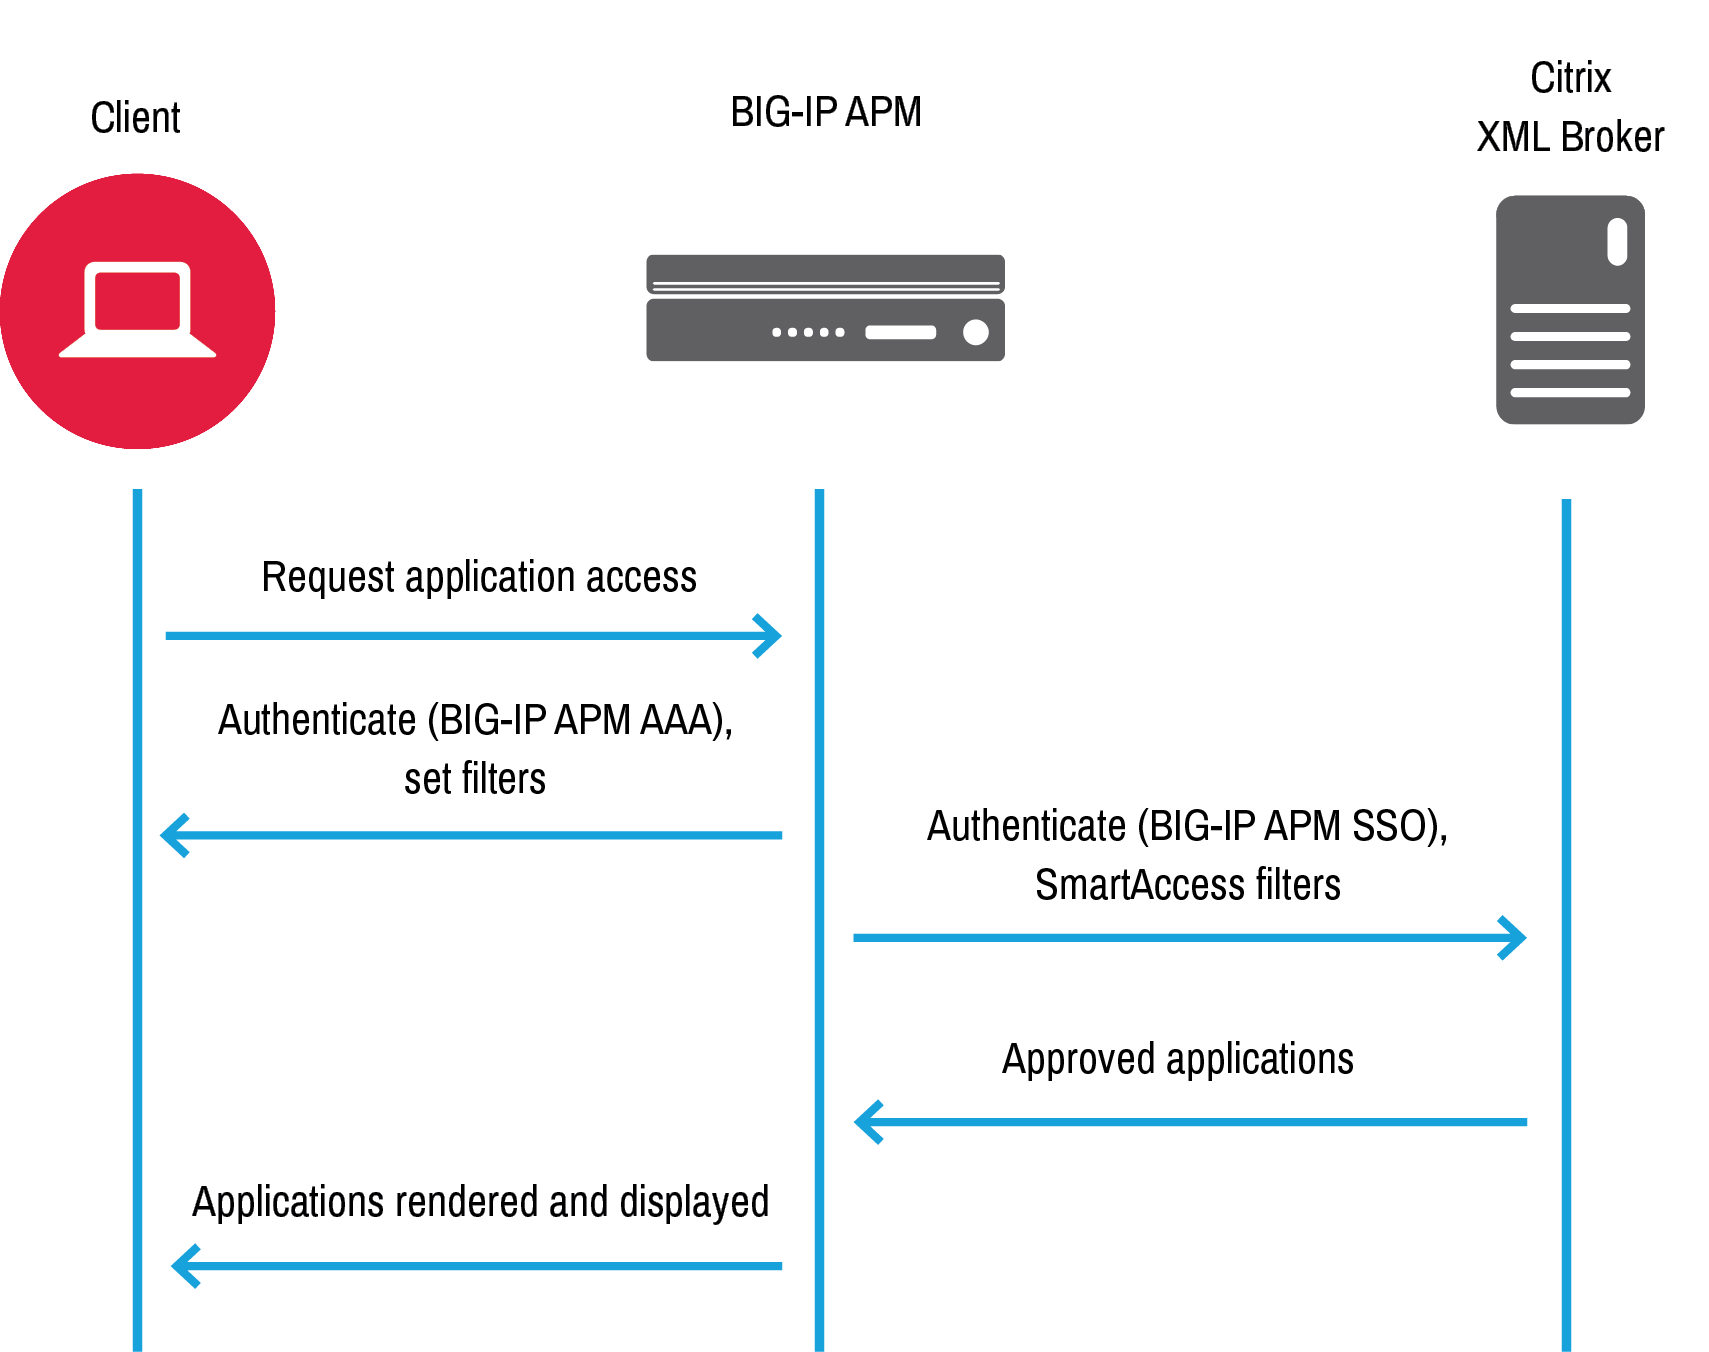 K08200035: BIG-IP APM operations guide